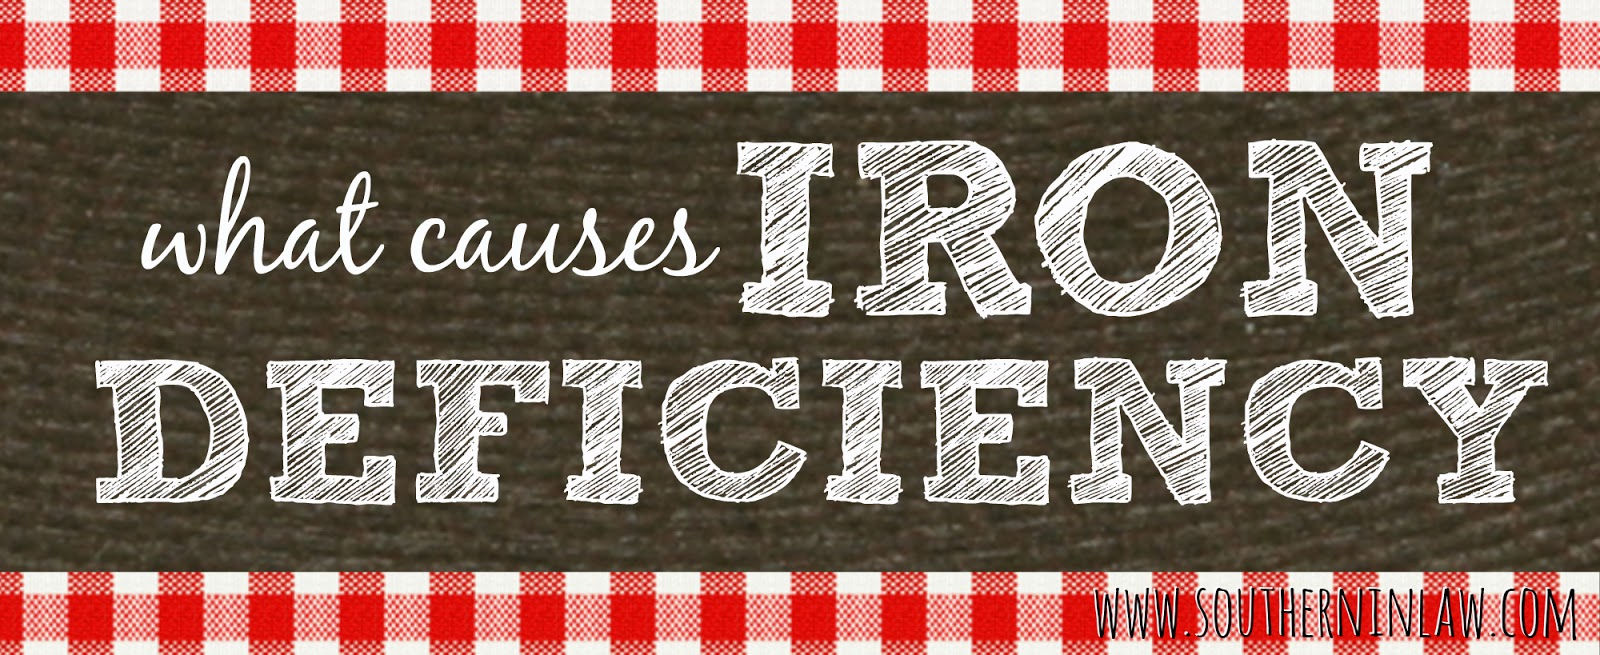 What causes iron deficiency? What causes anemia?